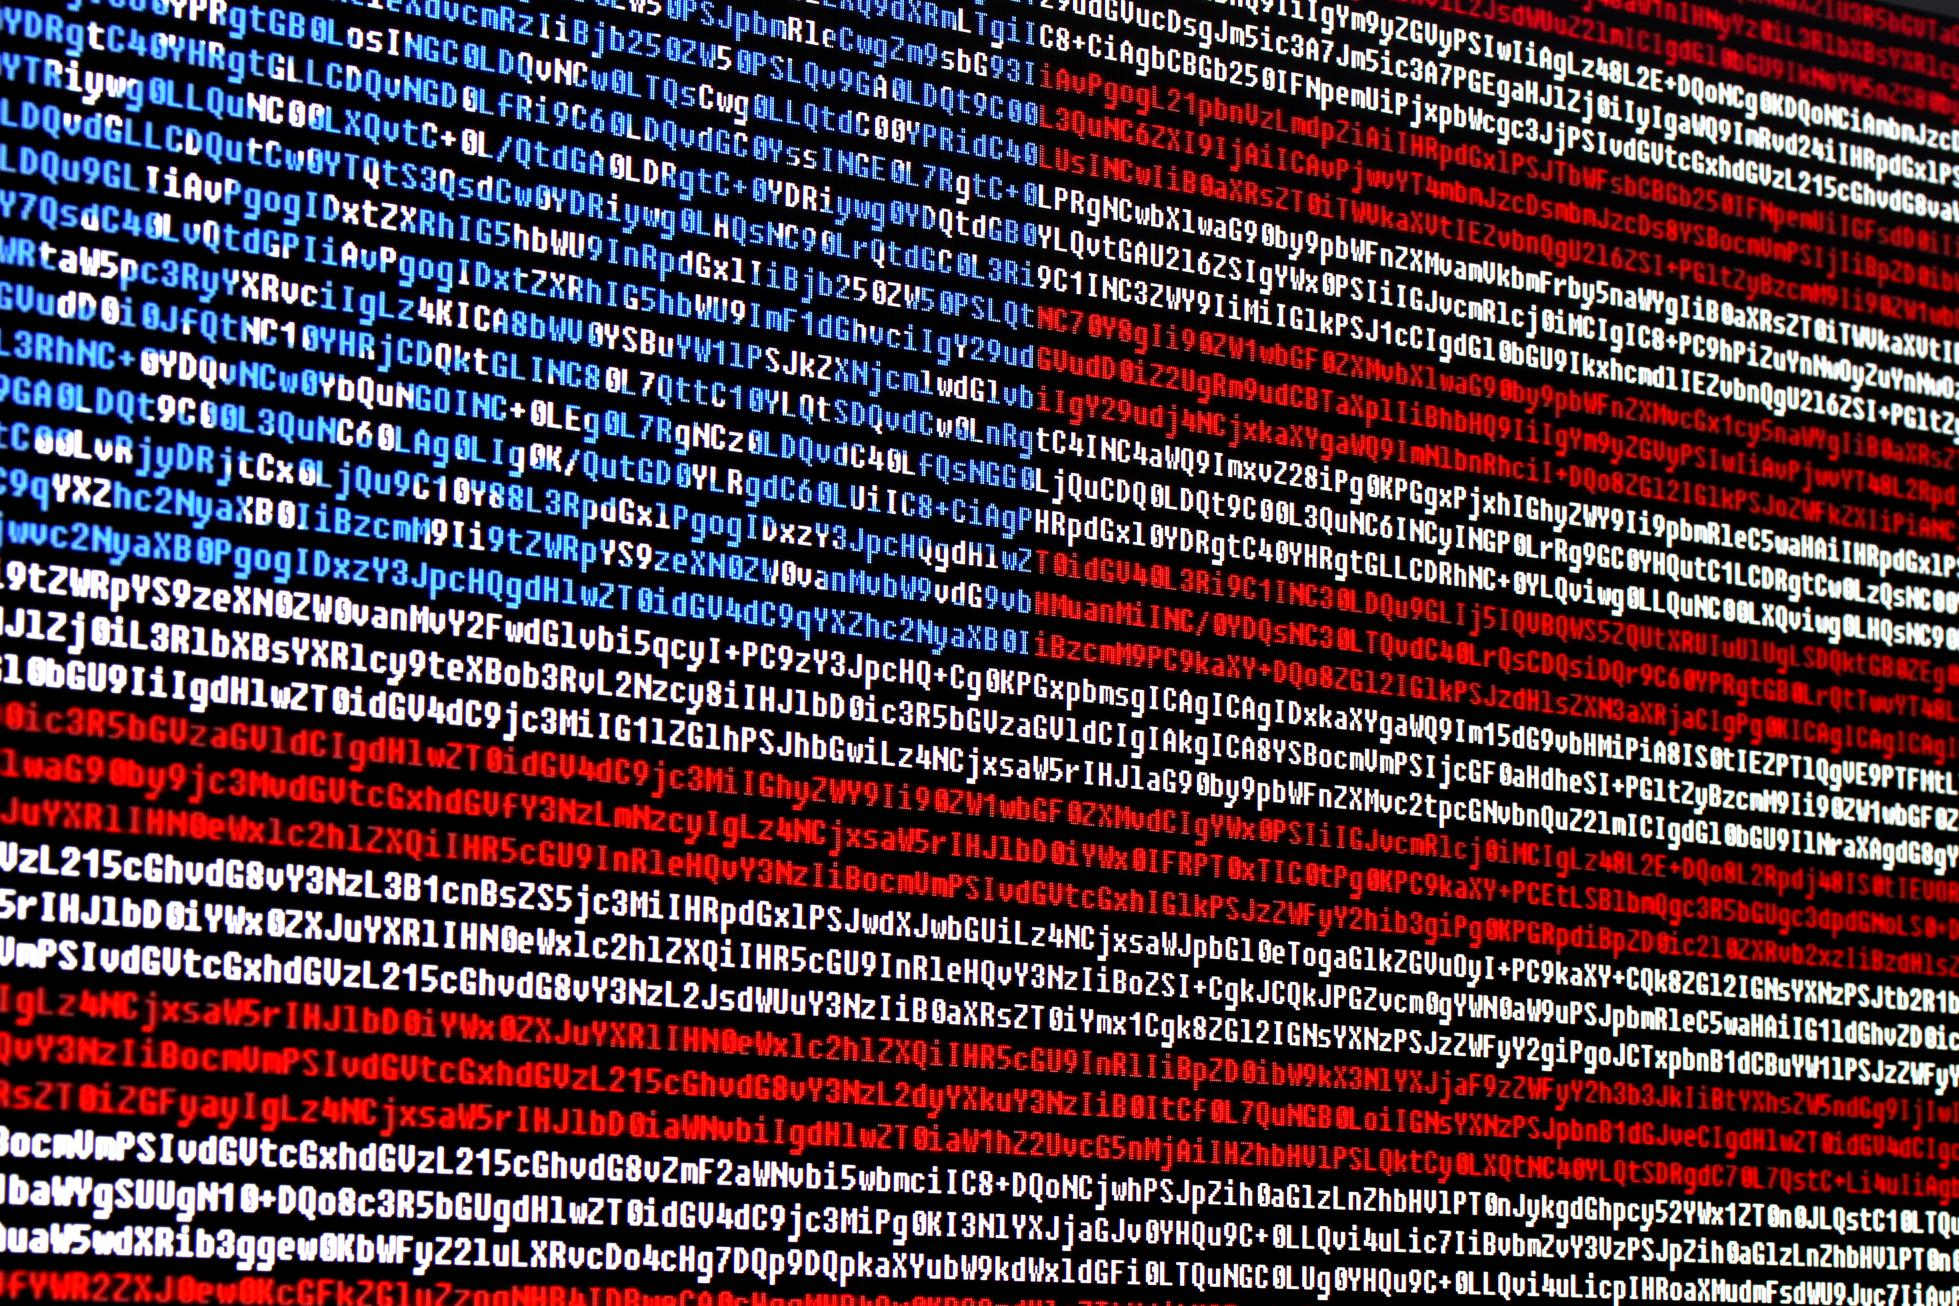 American businesses and government hit in SolarWinds attacks